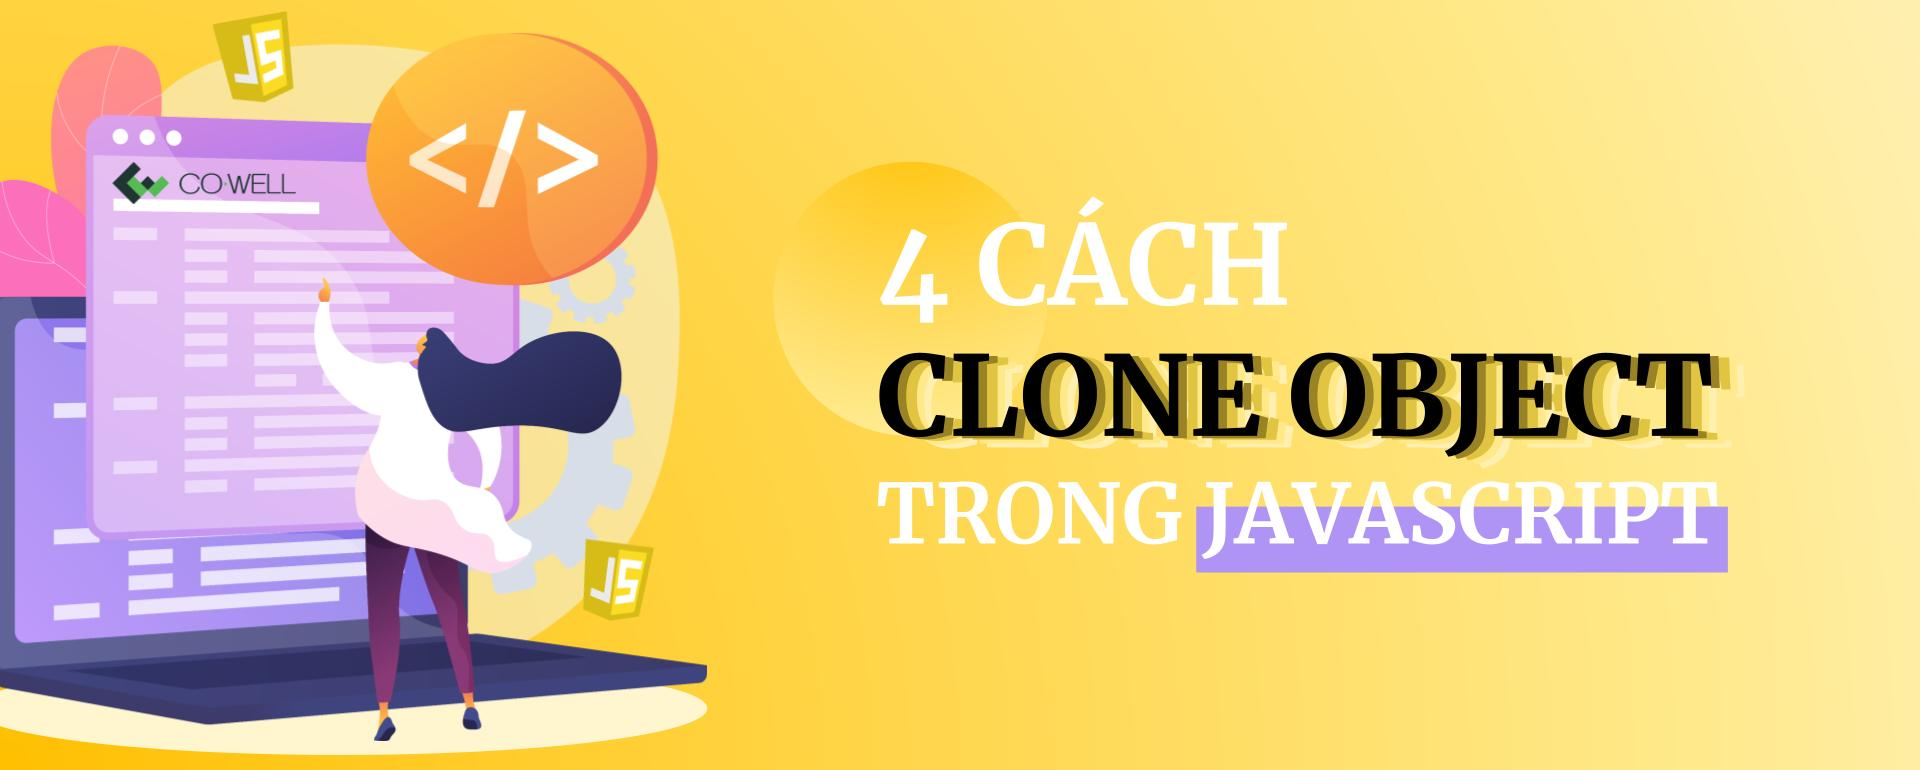 4 cach clone object trong javascript feature